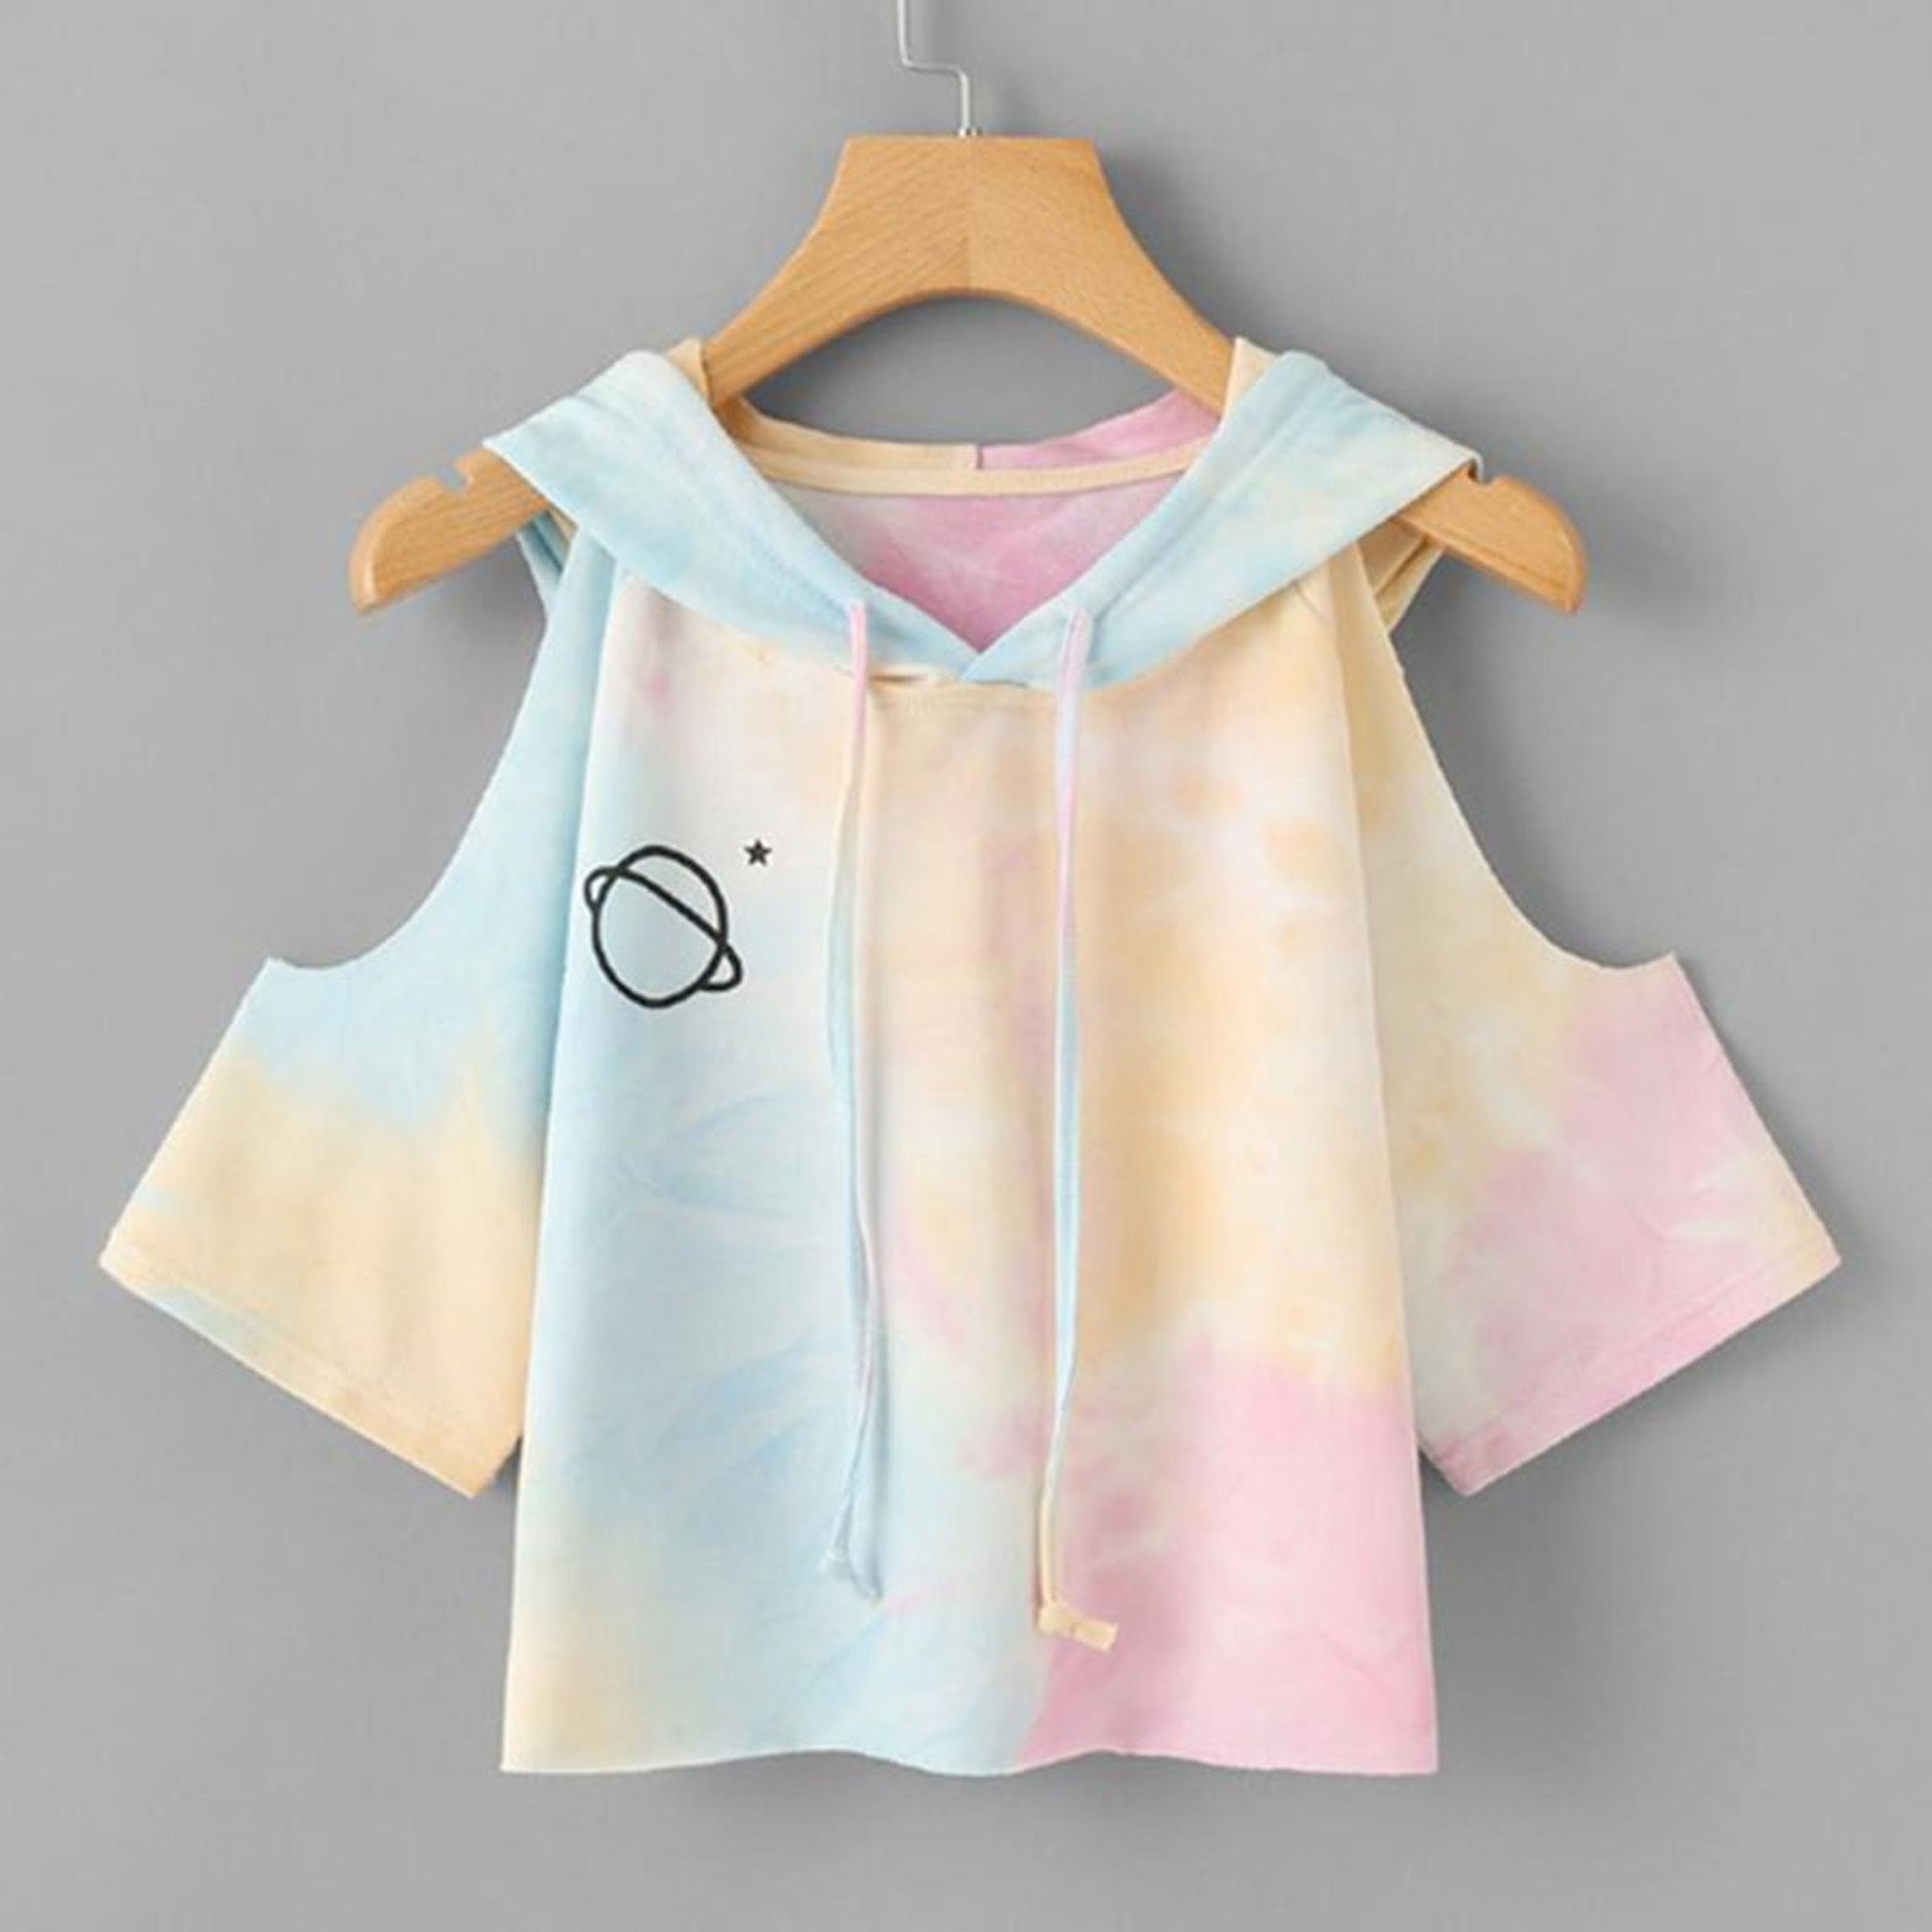 d249414f170 Galaxy Rainbow Tie Dye Planet Cold Shoulder Crop Top T-Shirt Hoodie Sweater